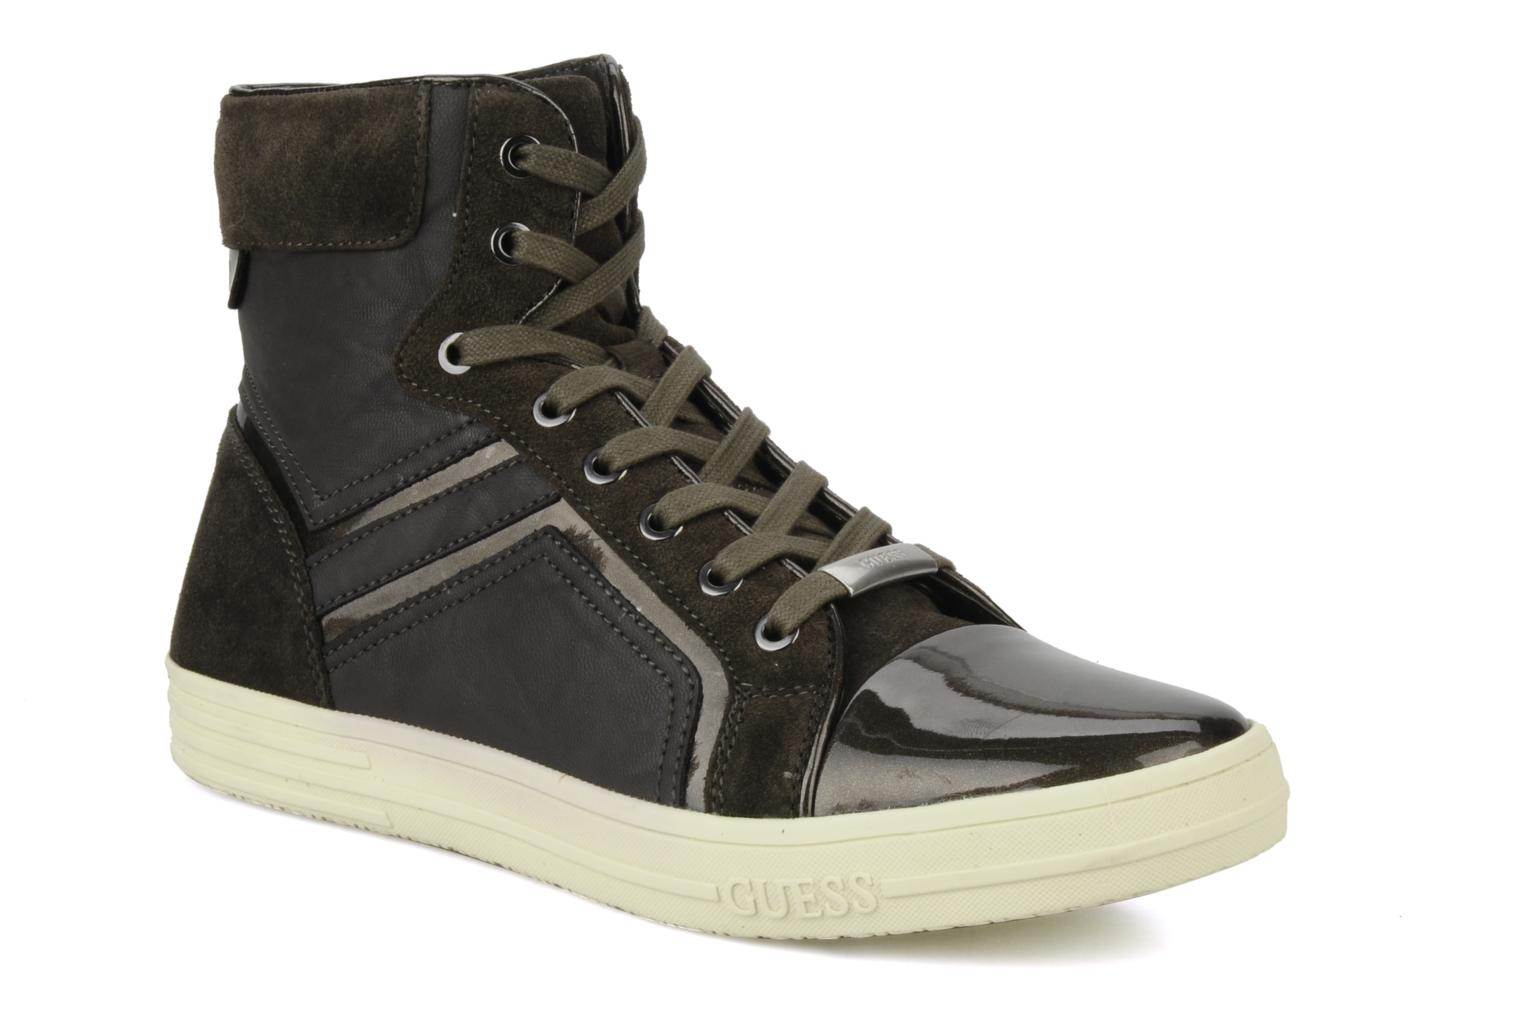 Sneakers Melow by Guess